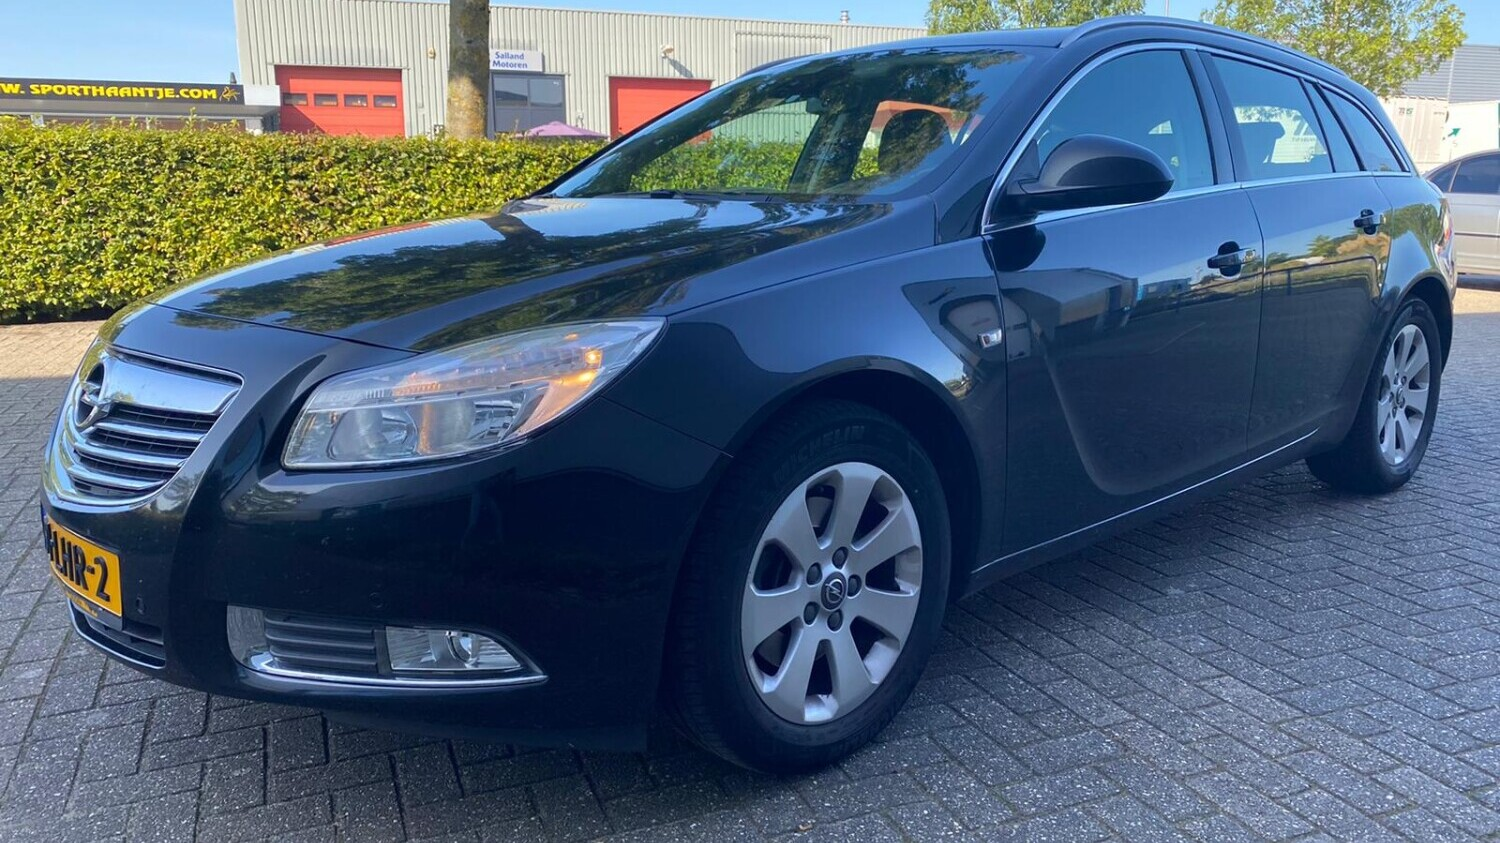 Opel Insignia Station 2010 91-LHR-2 1